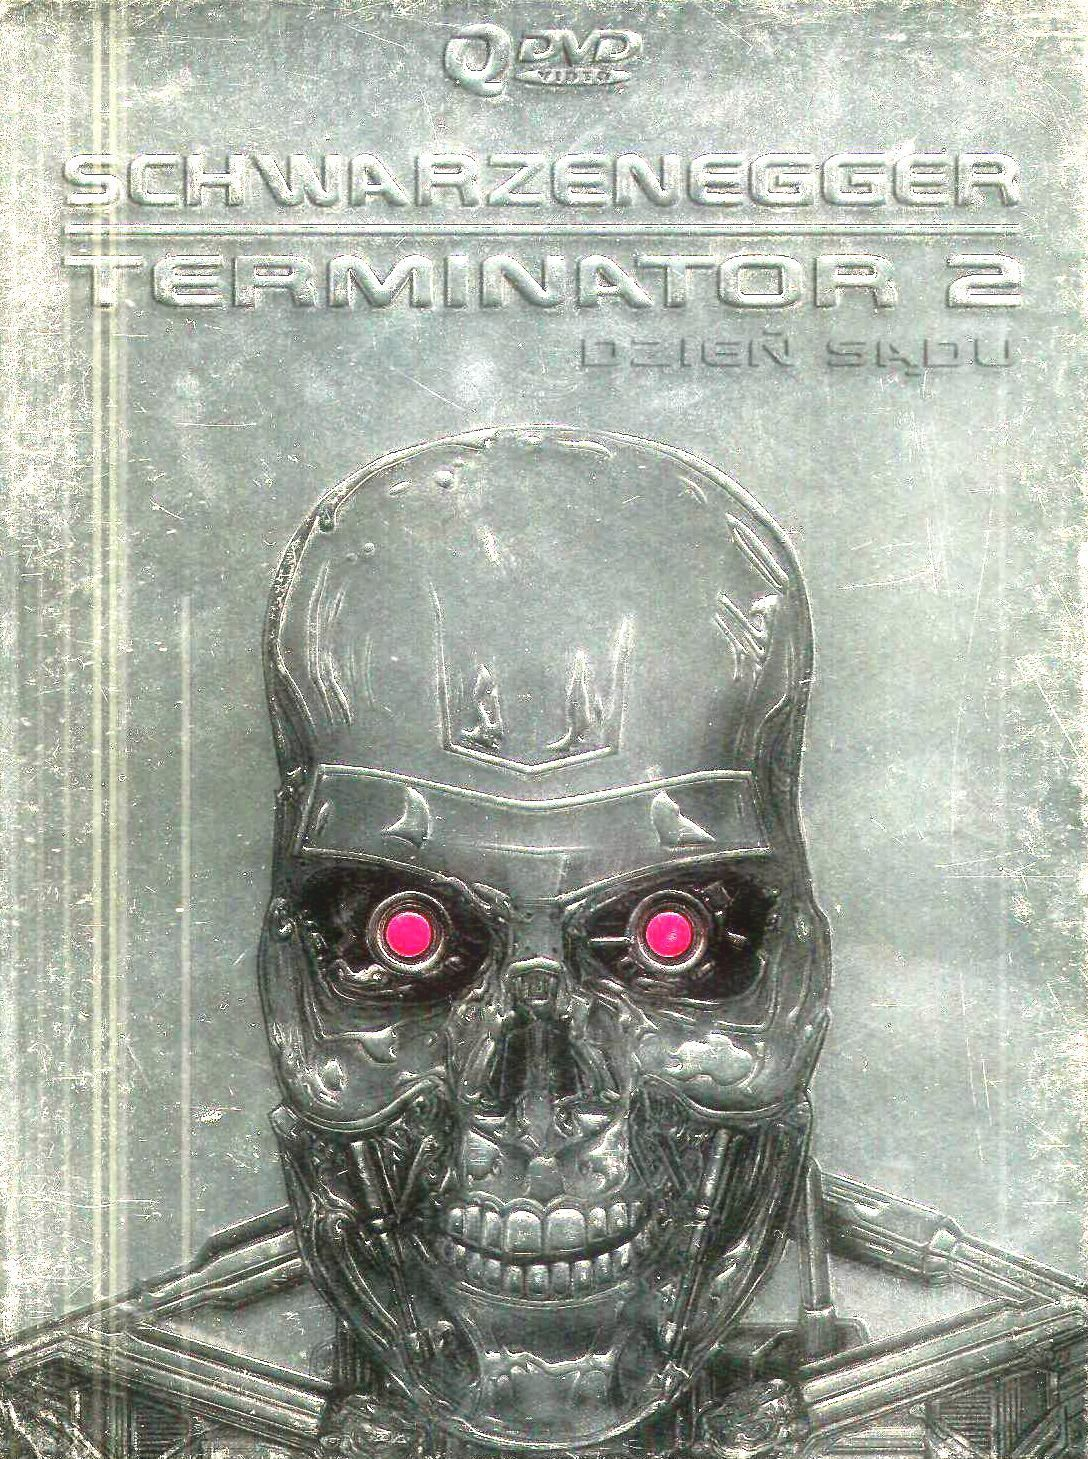 Steel Edition of T2 (on QDVD)